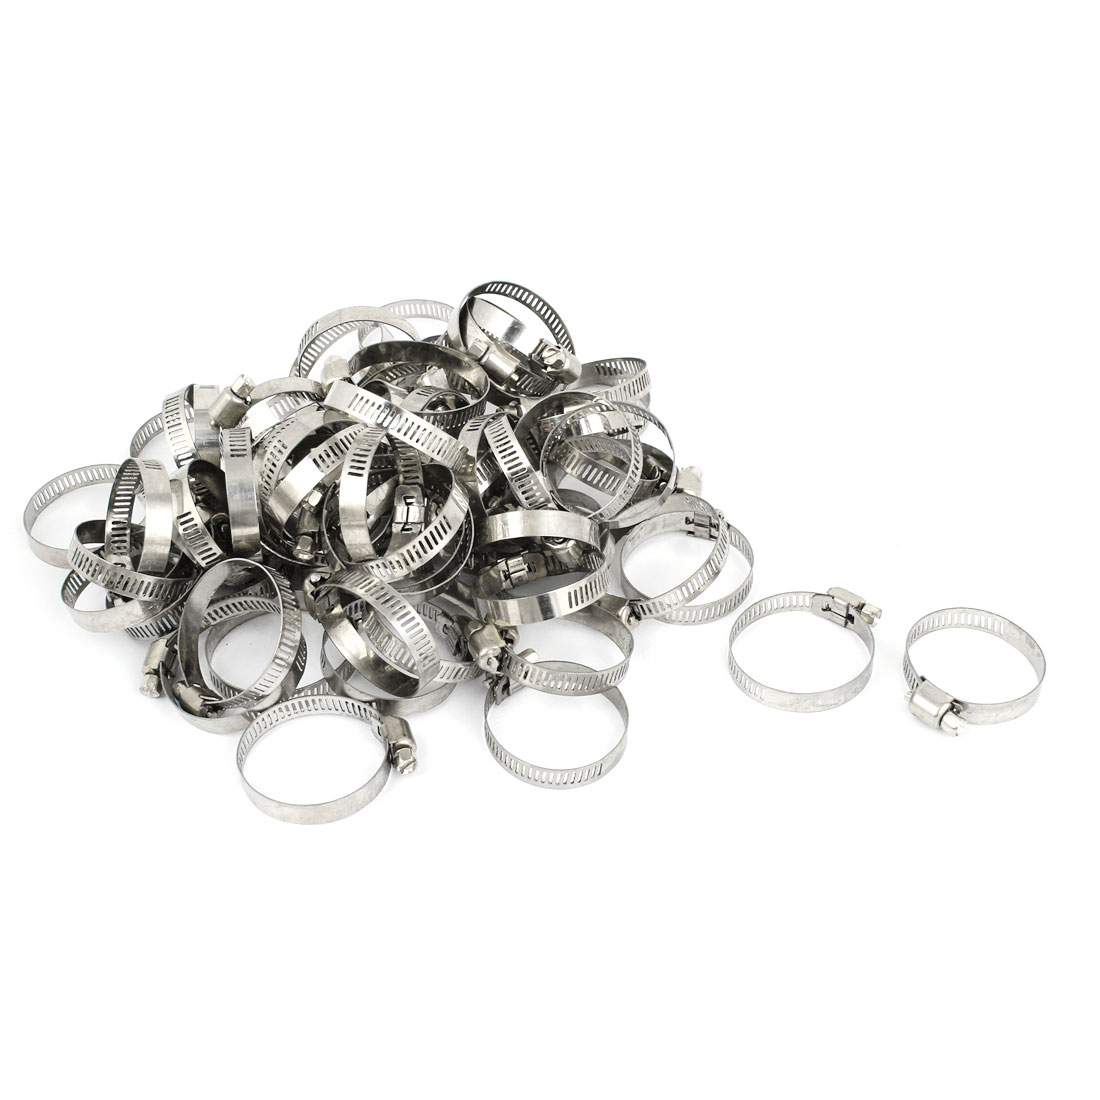 100 Pcs 25-38mm Silver Tone Stainless Steel Adjustable Worm Drive Hose Clamps